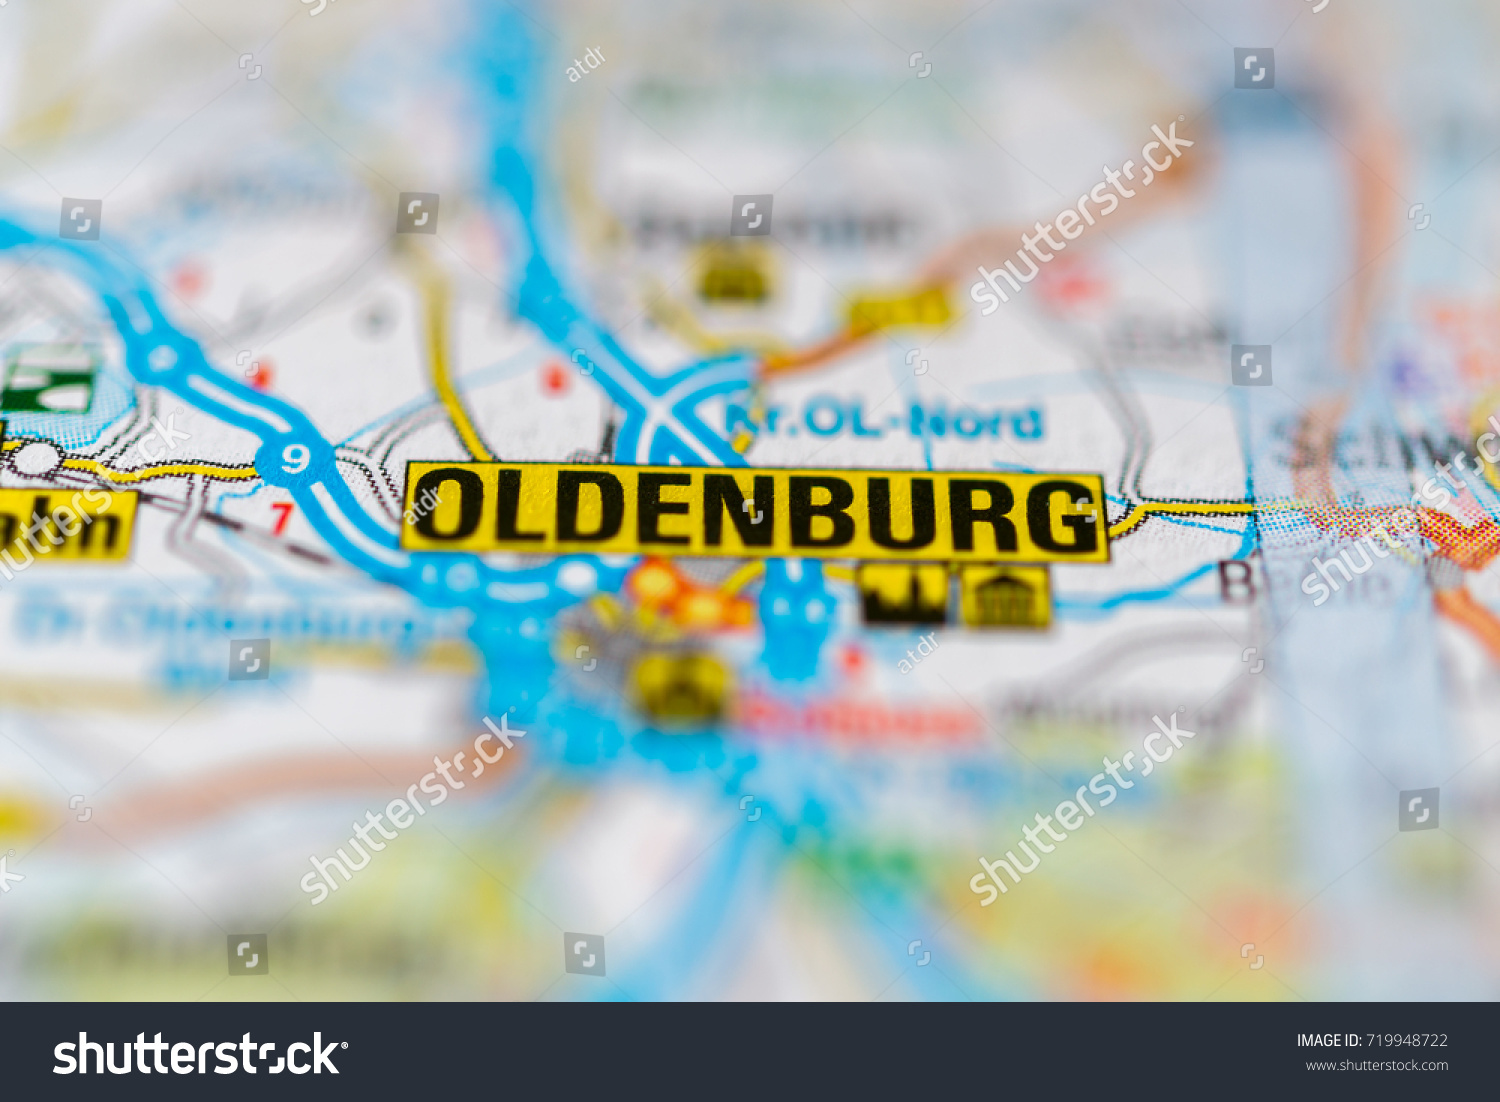 Oldenburg On Map Stock Photo Shutterstock - Oldenburg map